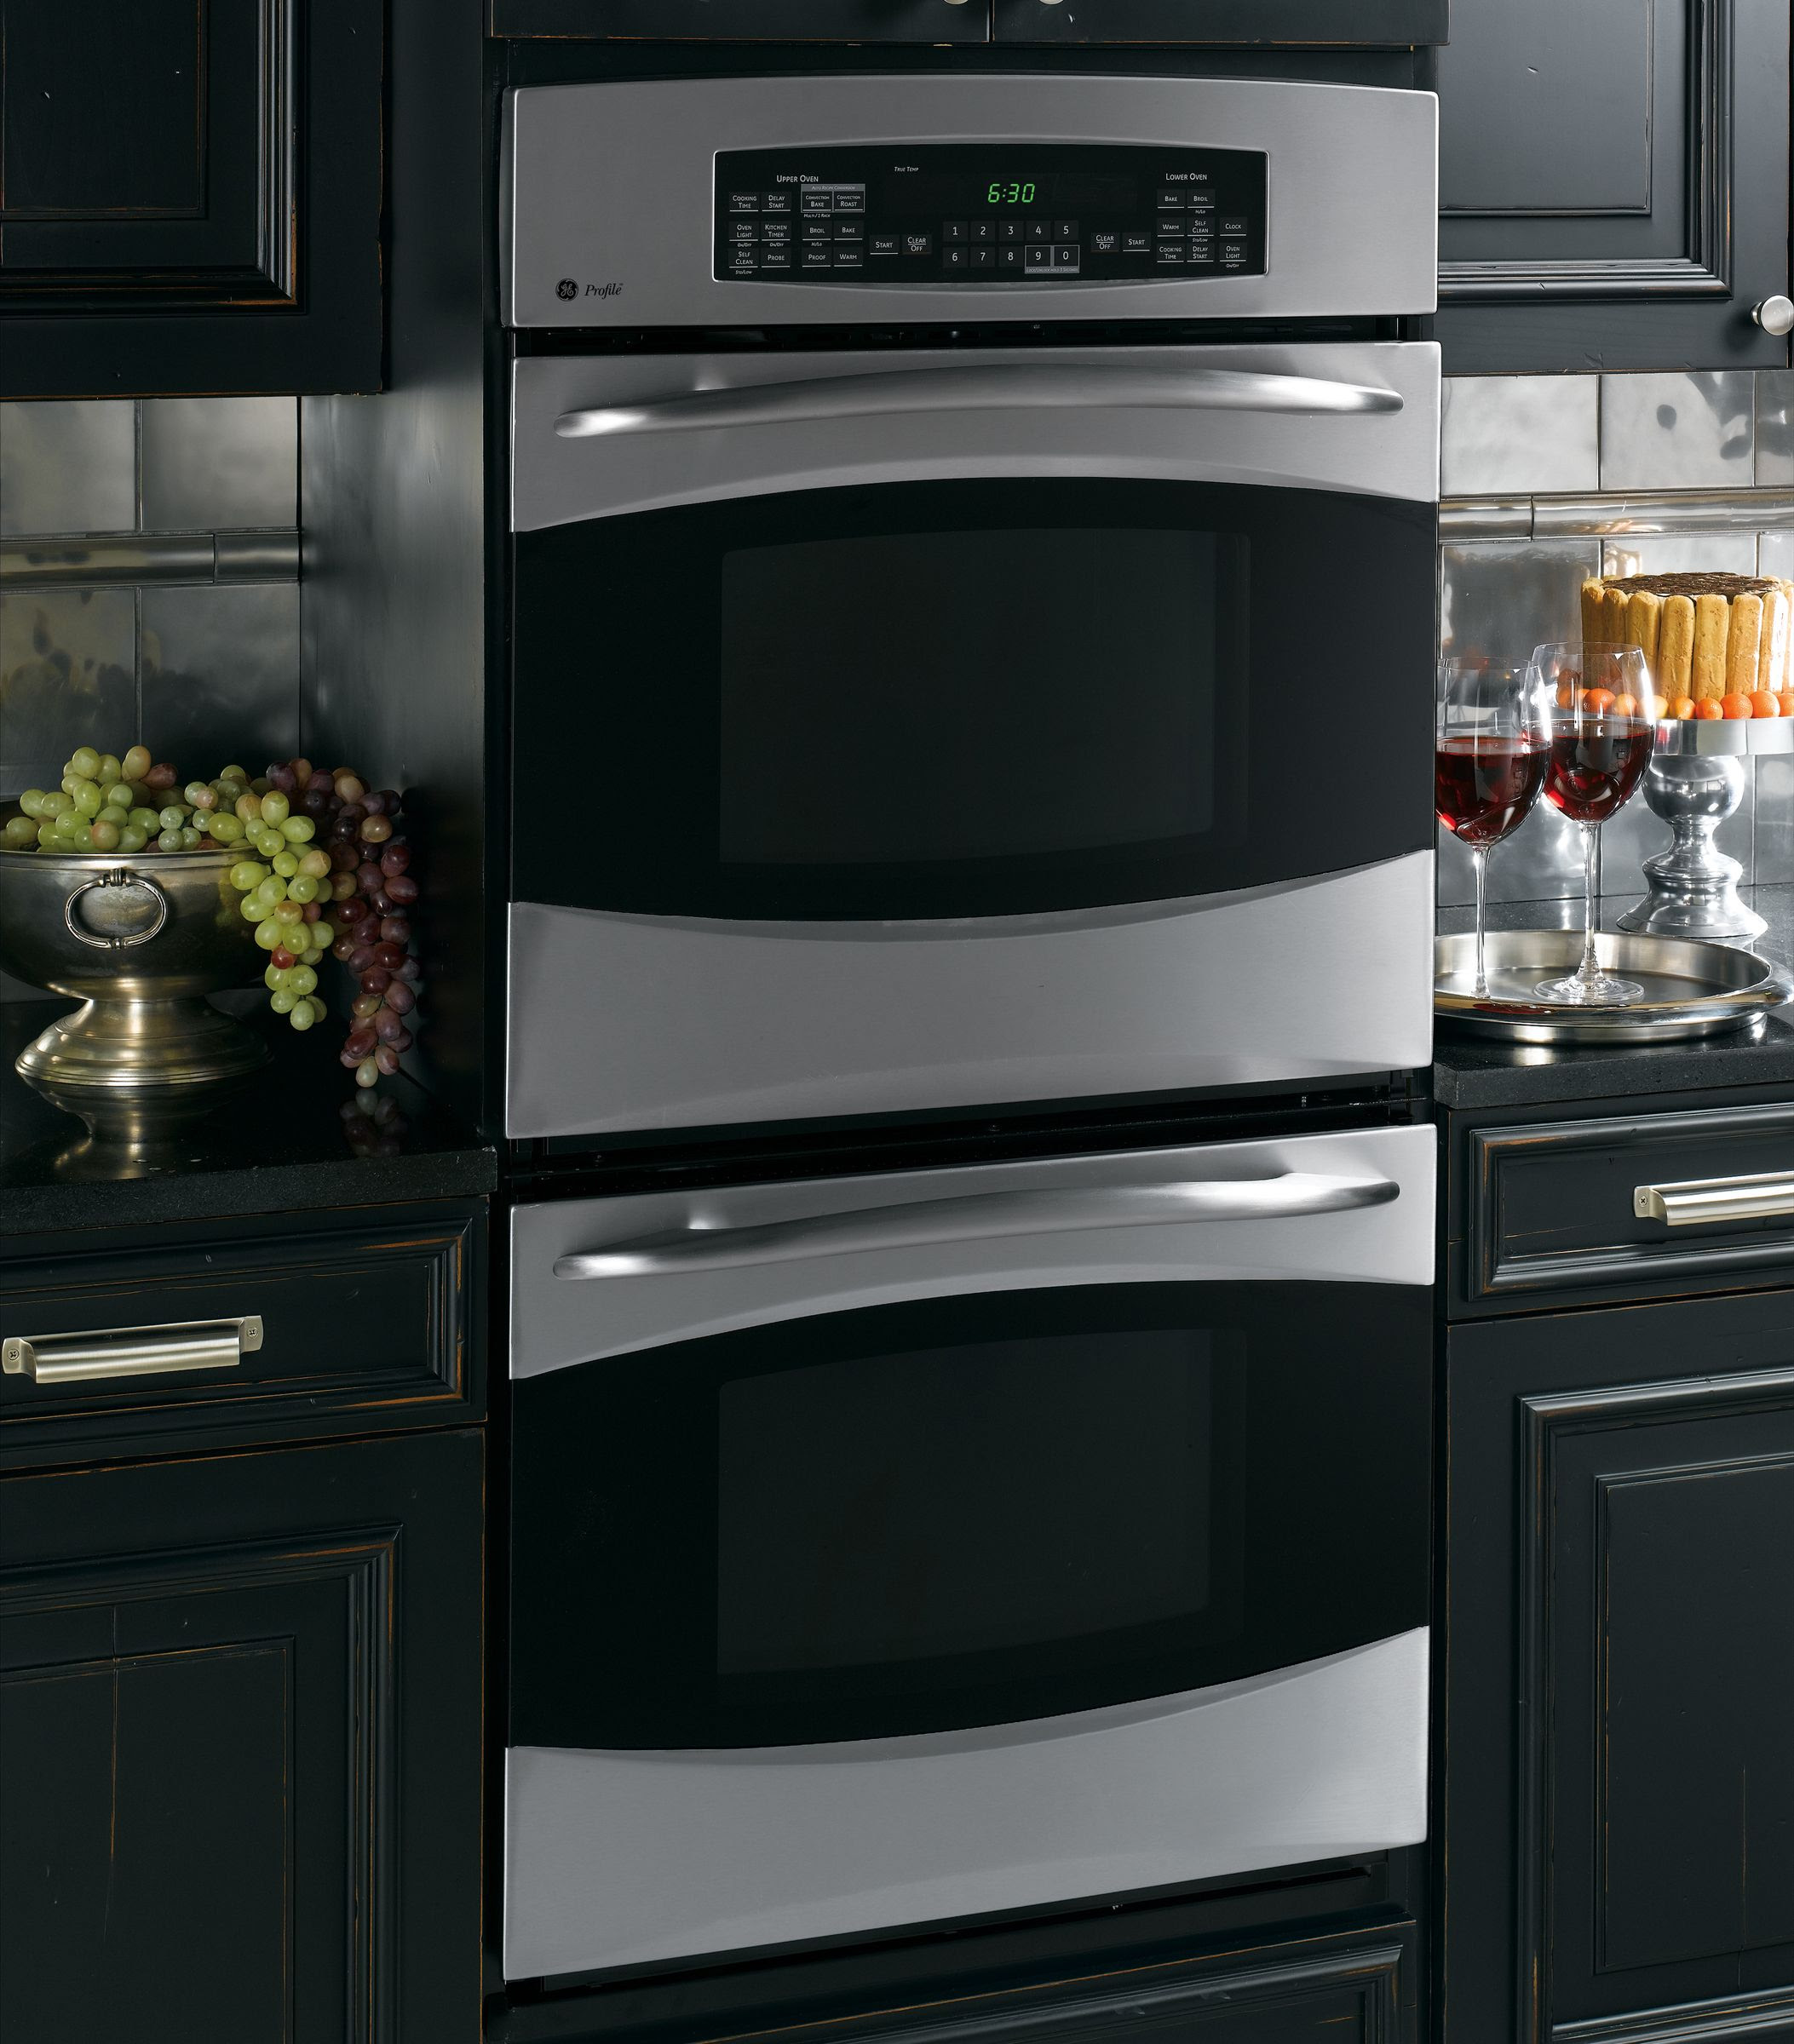 GE Profile Electric Double Wall Oven 27 in. PK956 - Sears